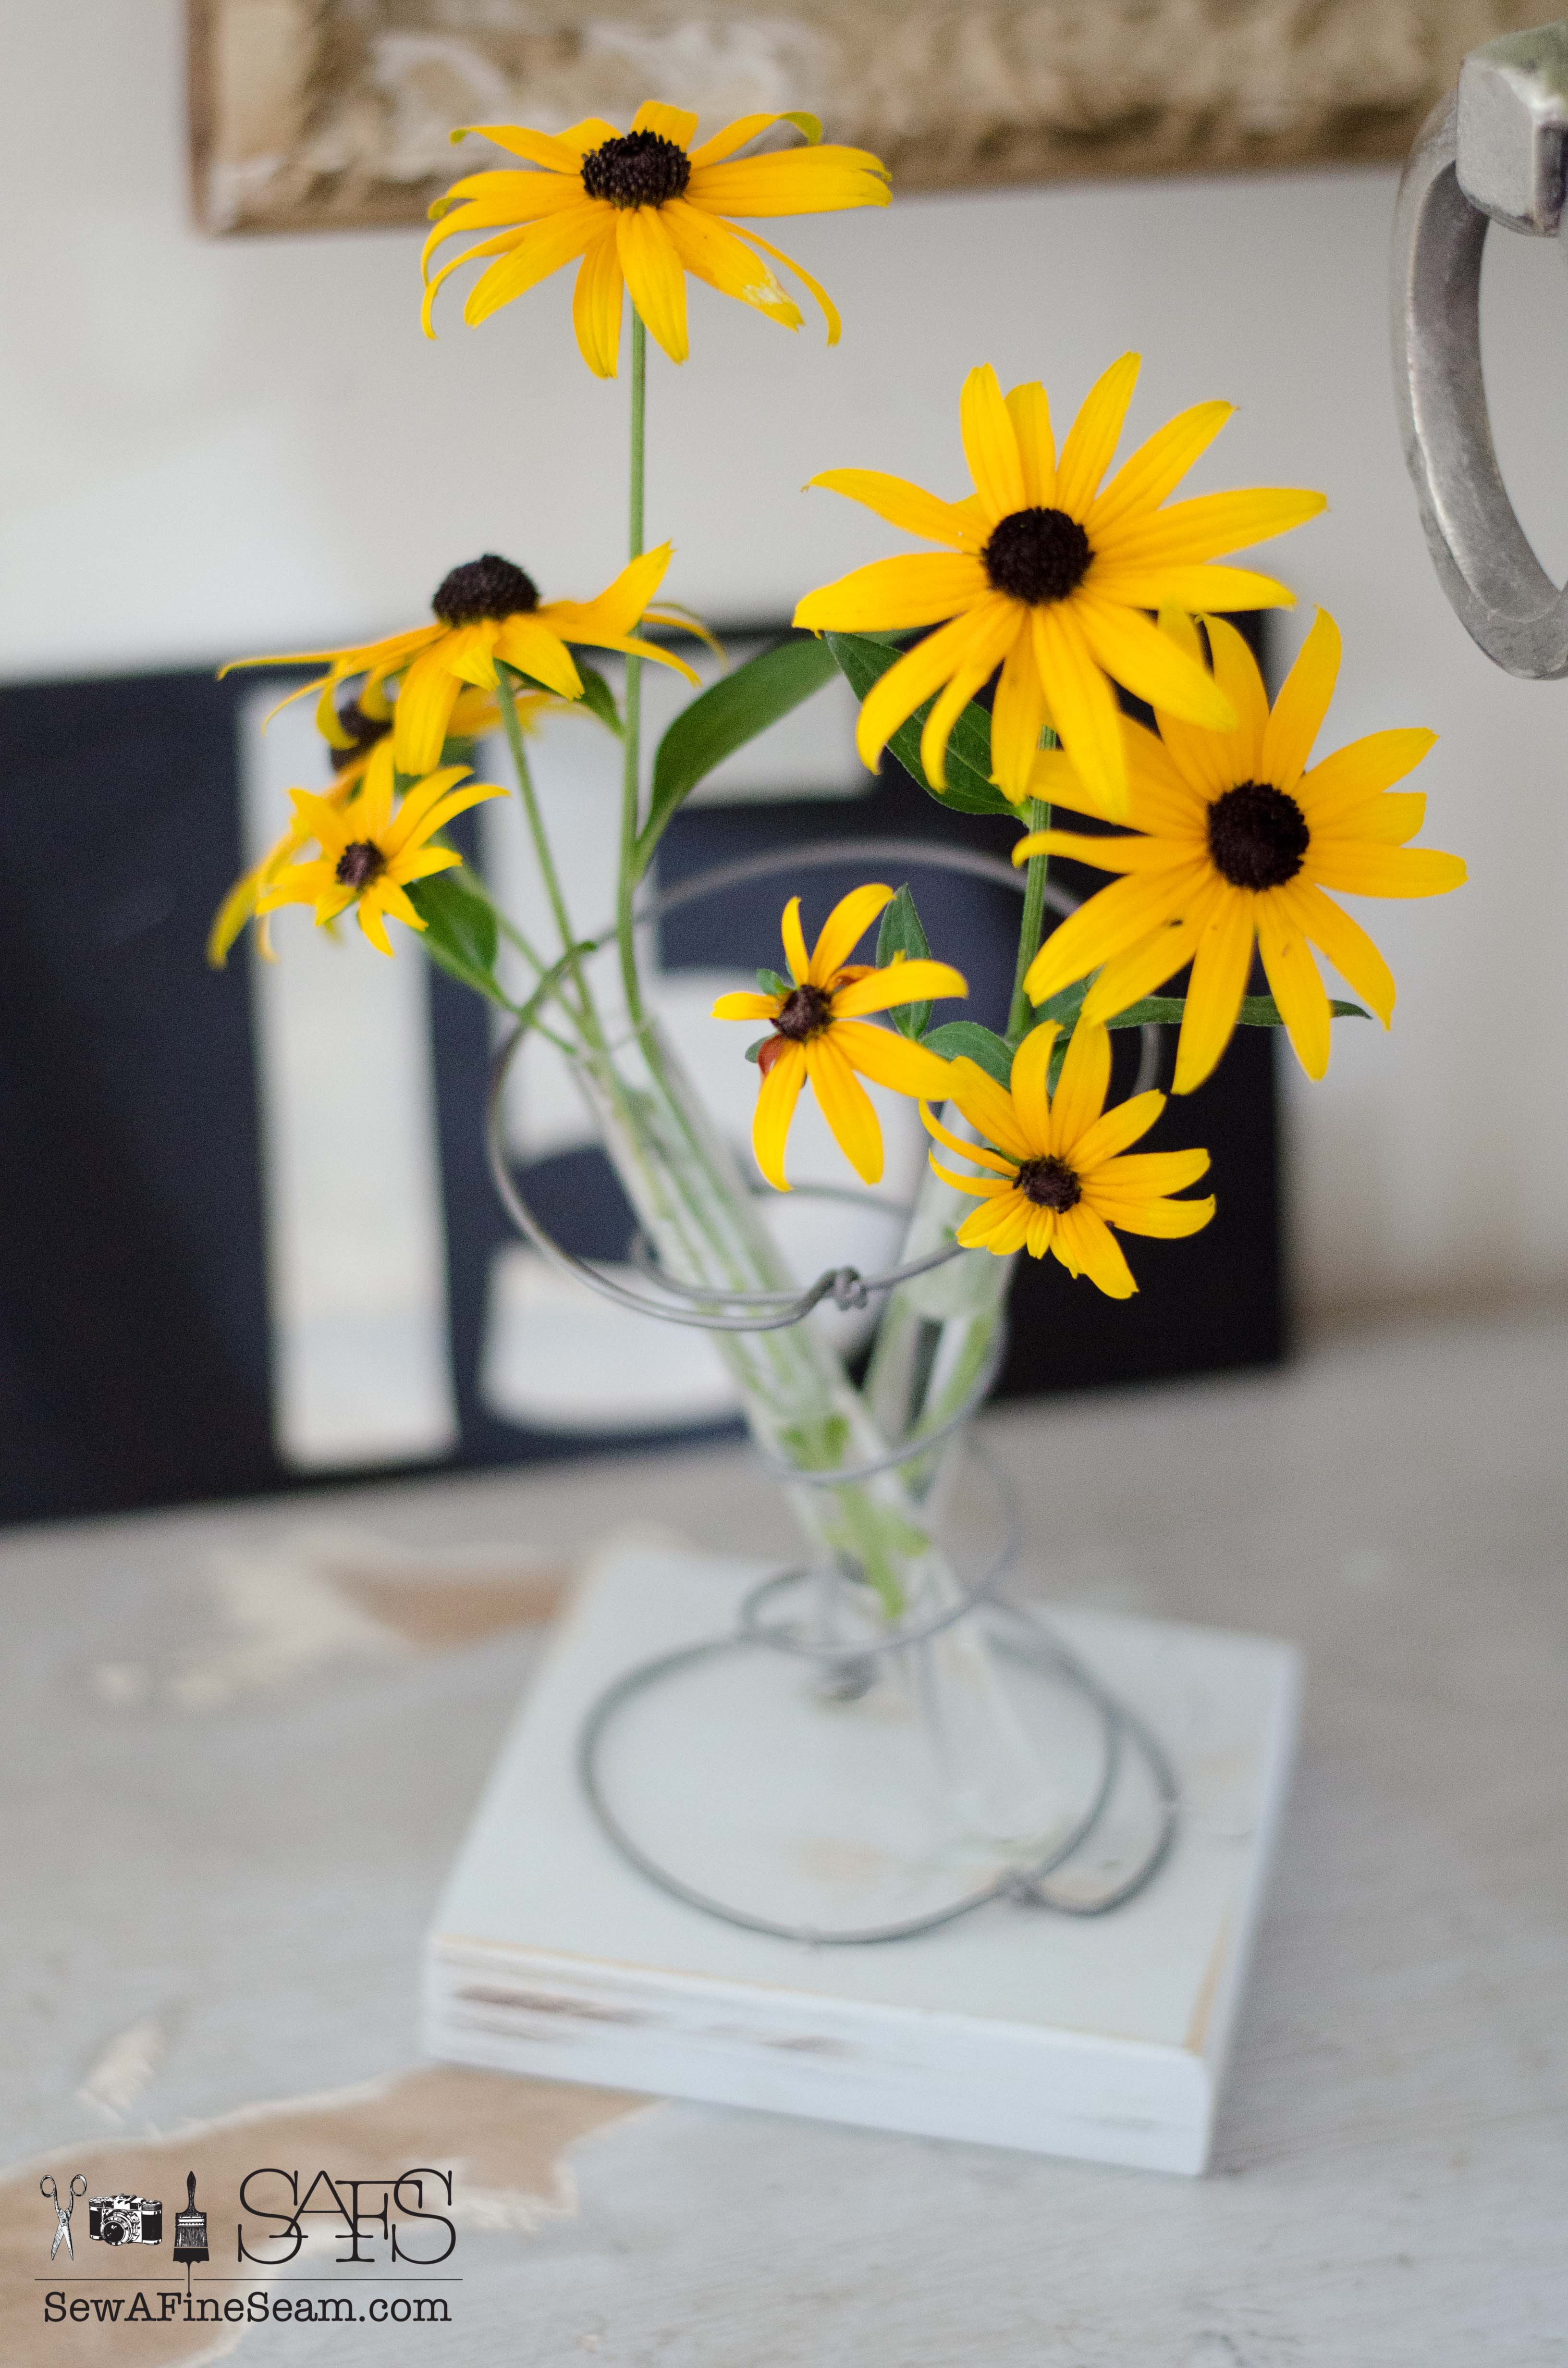 How to Create a Vintage Bedspring Vase How to Create a Vintage Bedspring Vase new images